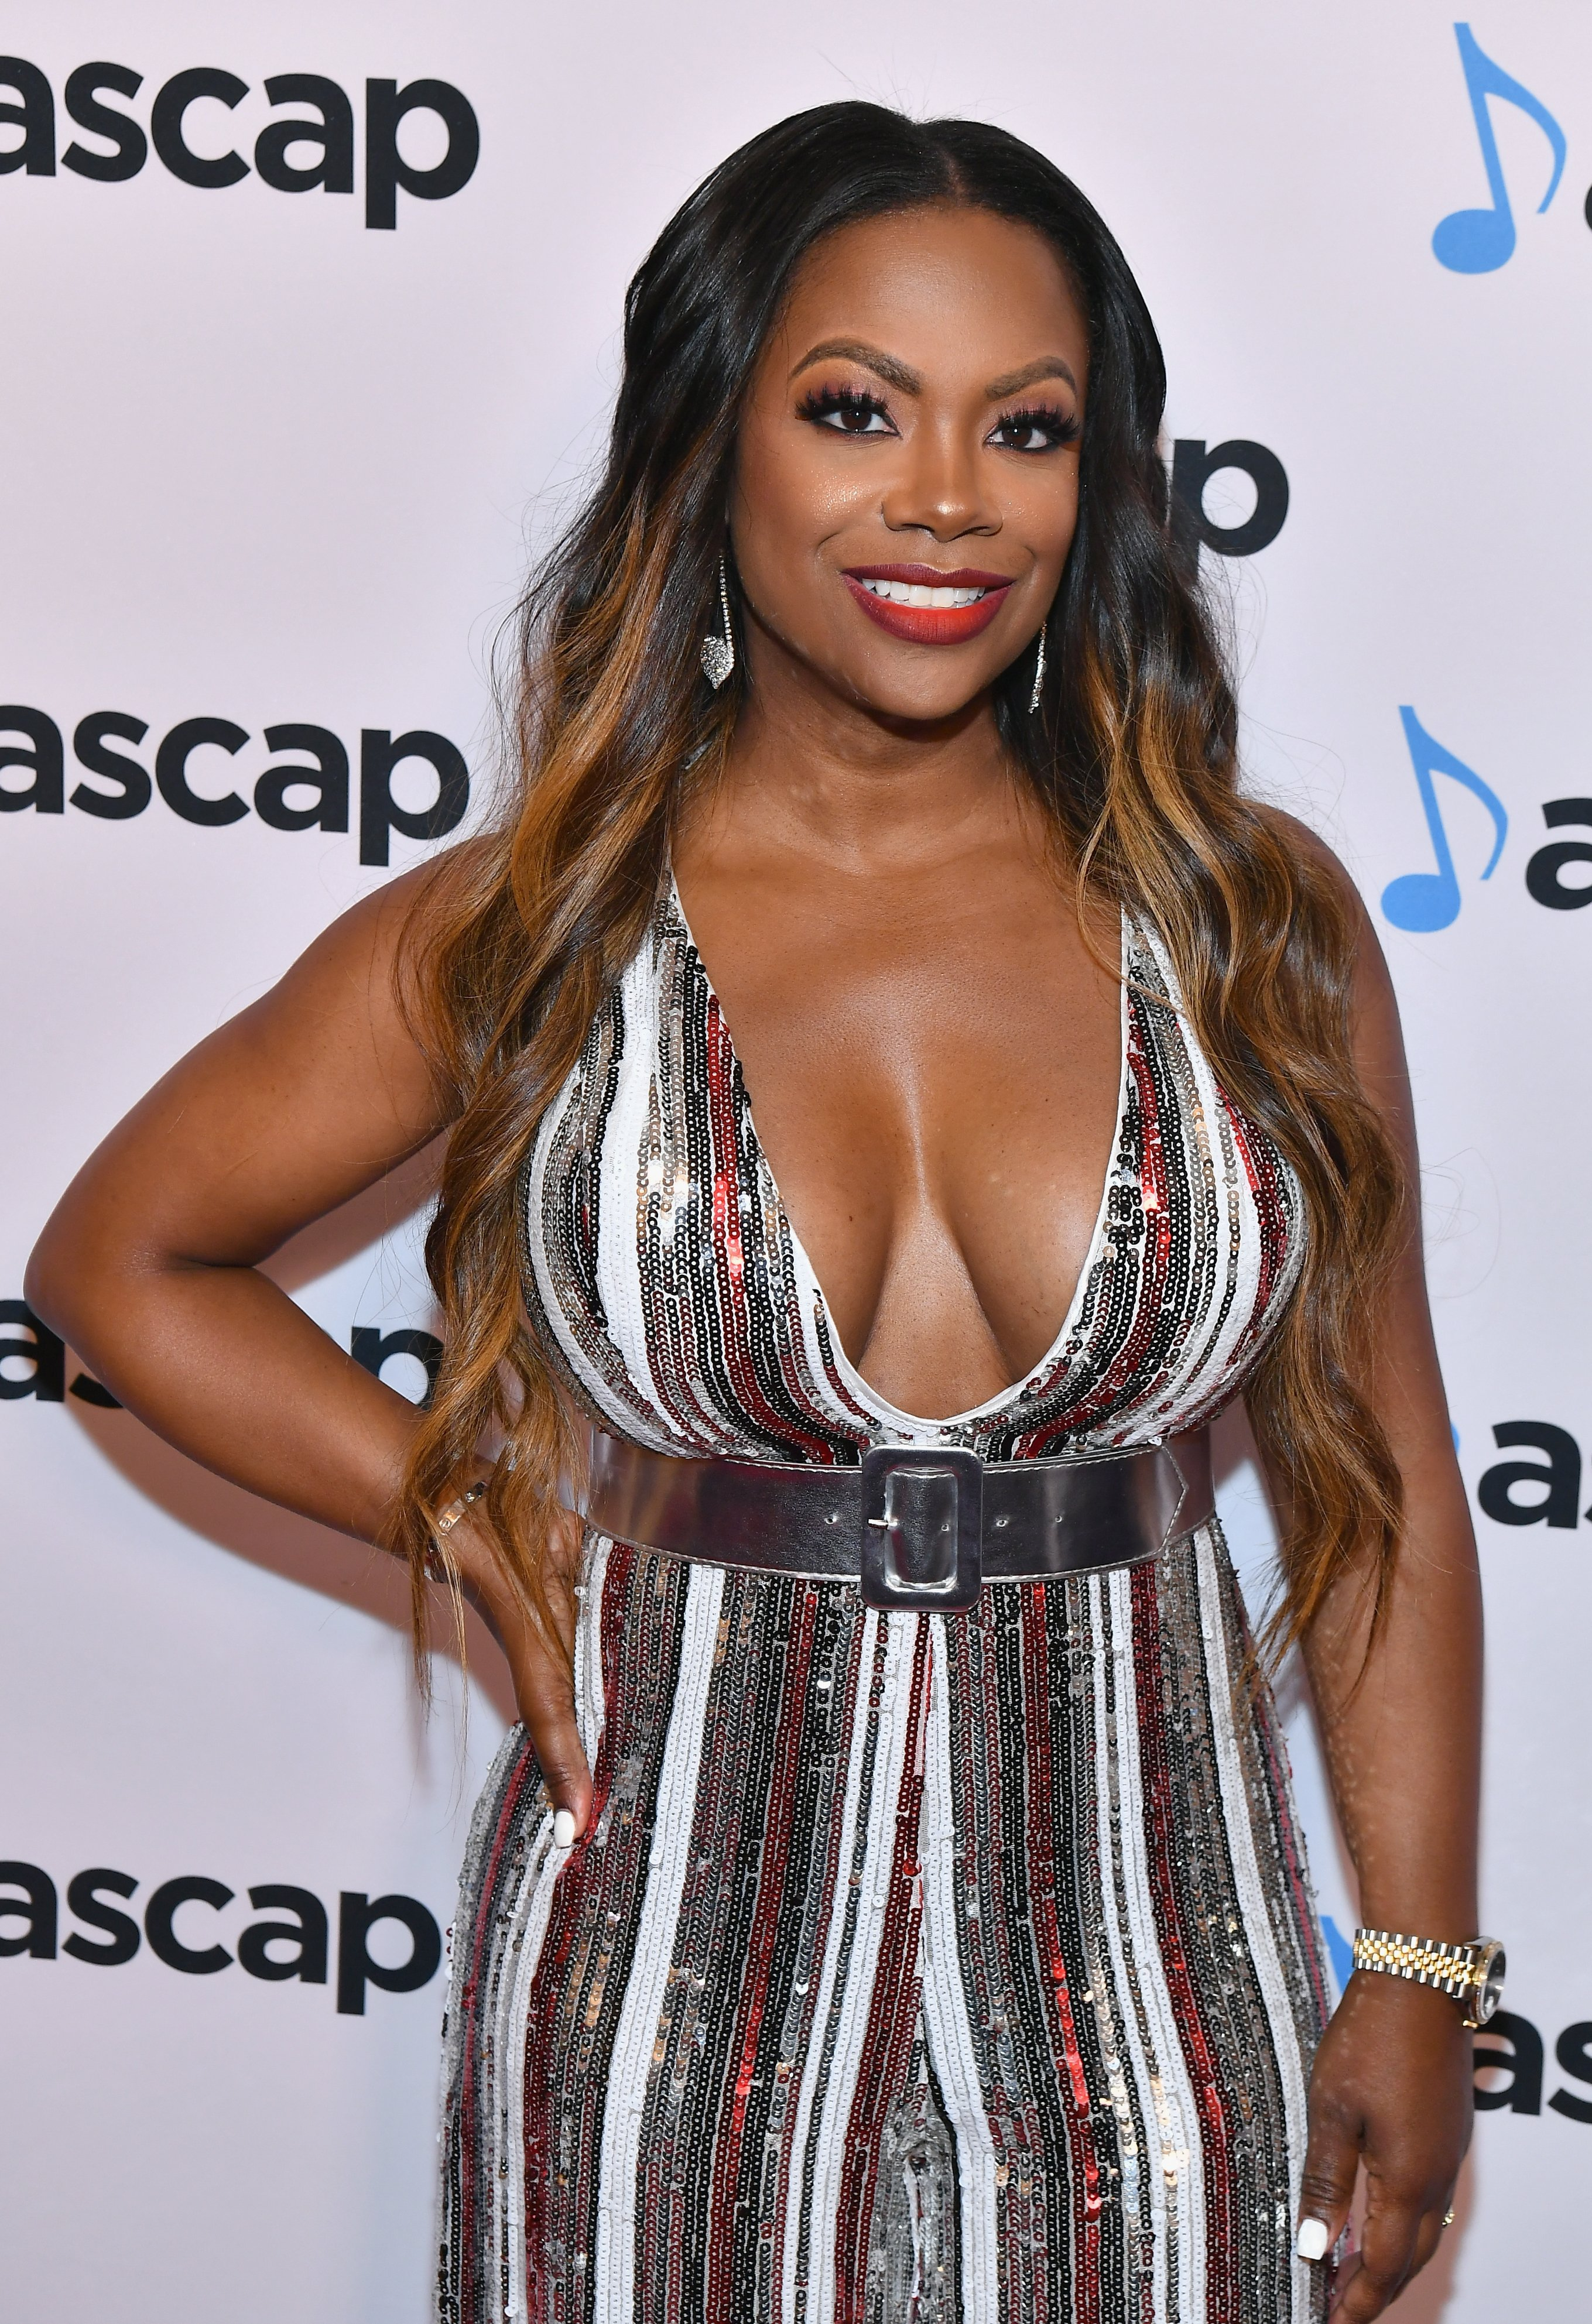 Kandi Burruss at the 31st ASCAP Rhythm & Soul Music Awards in Beverly Hills in June 2018. | Photo: Getty Images